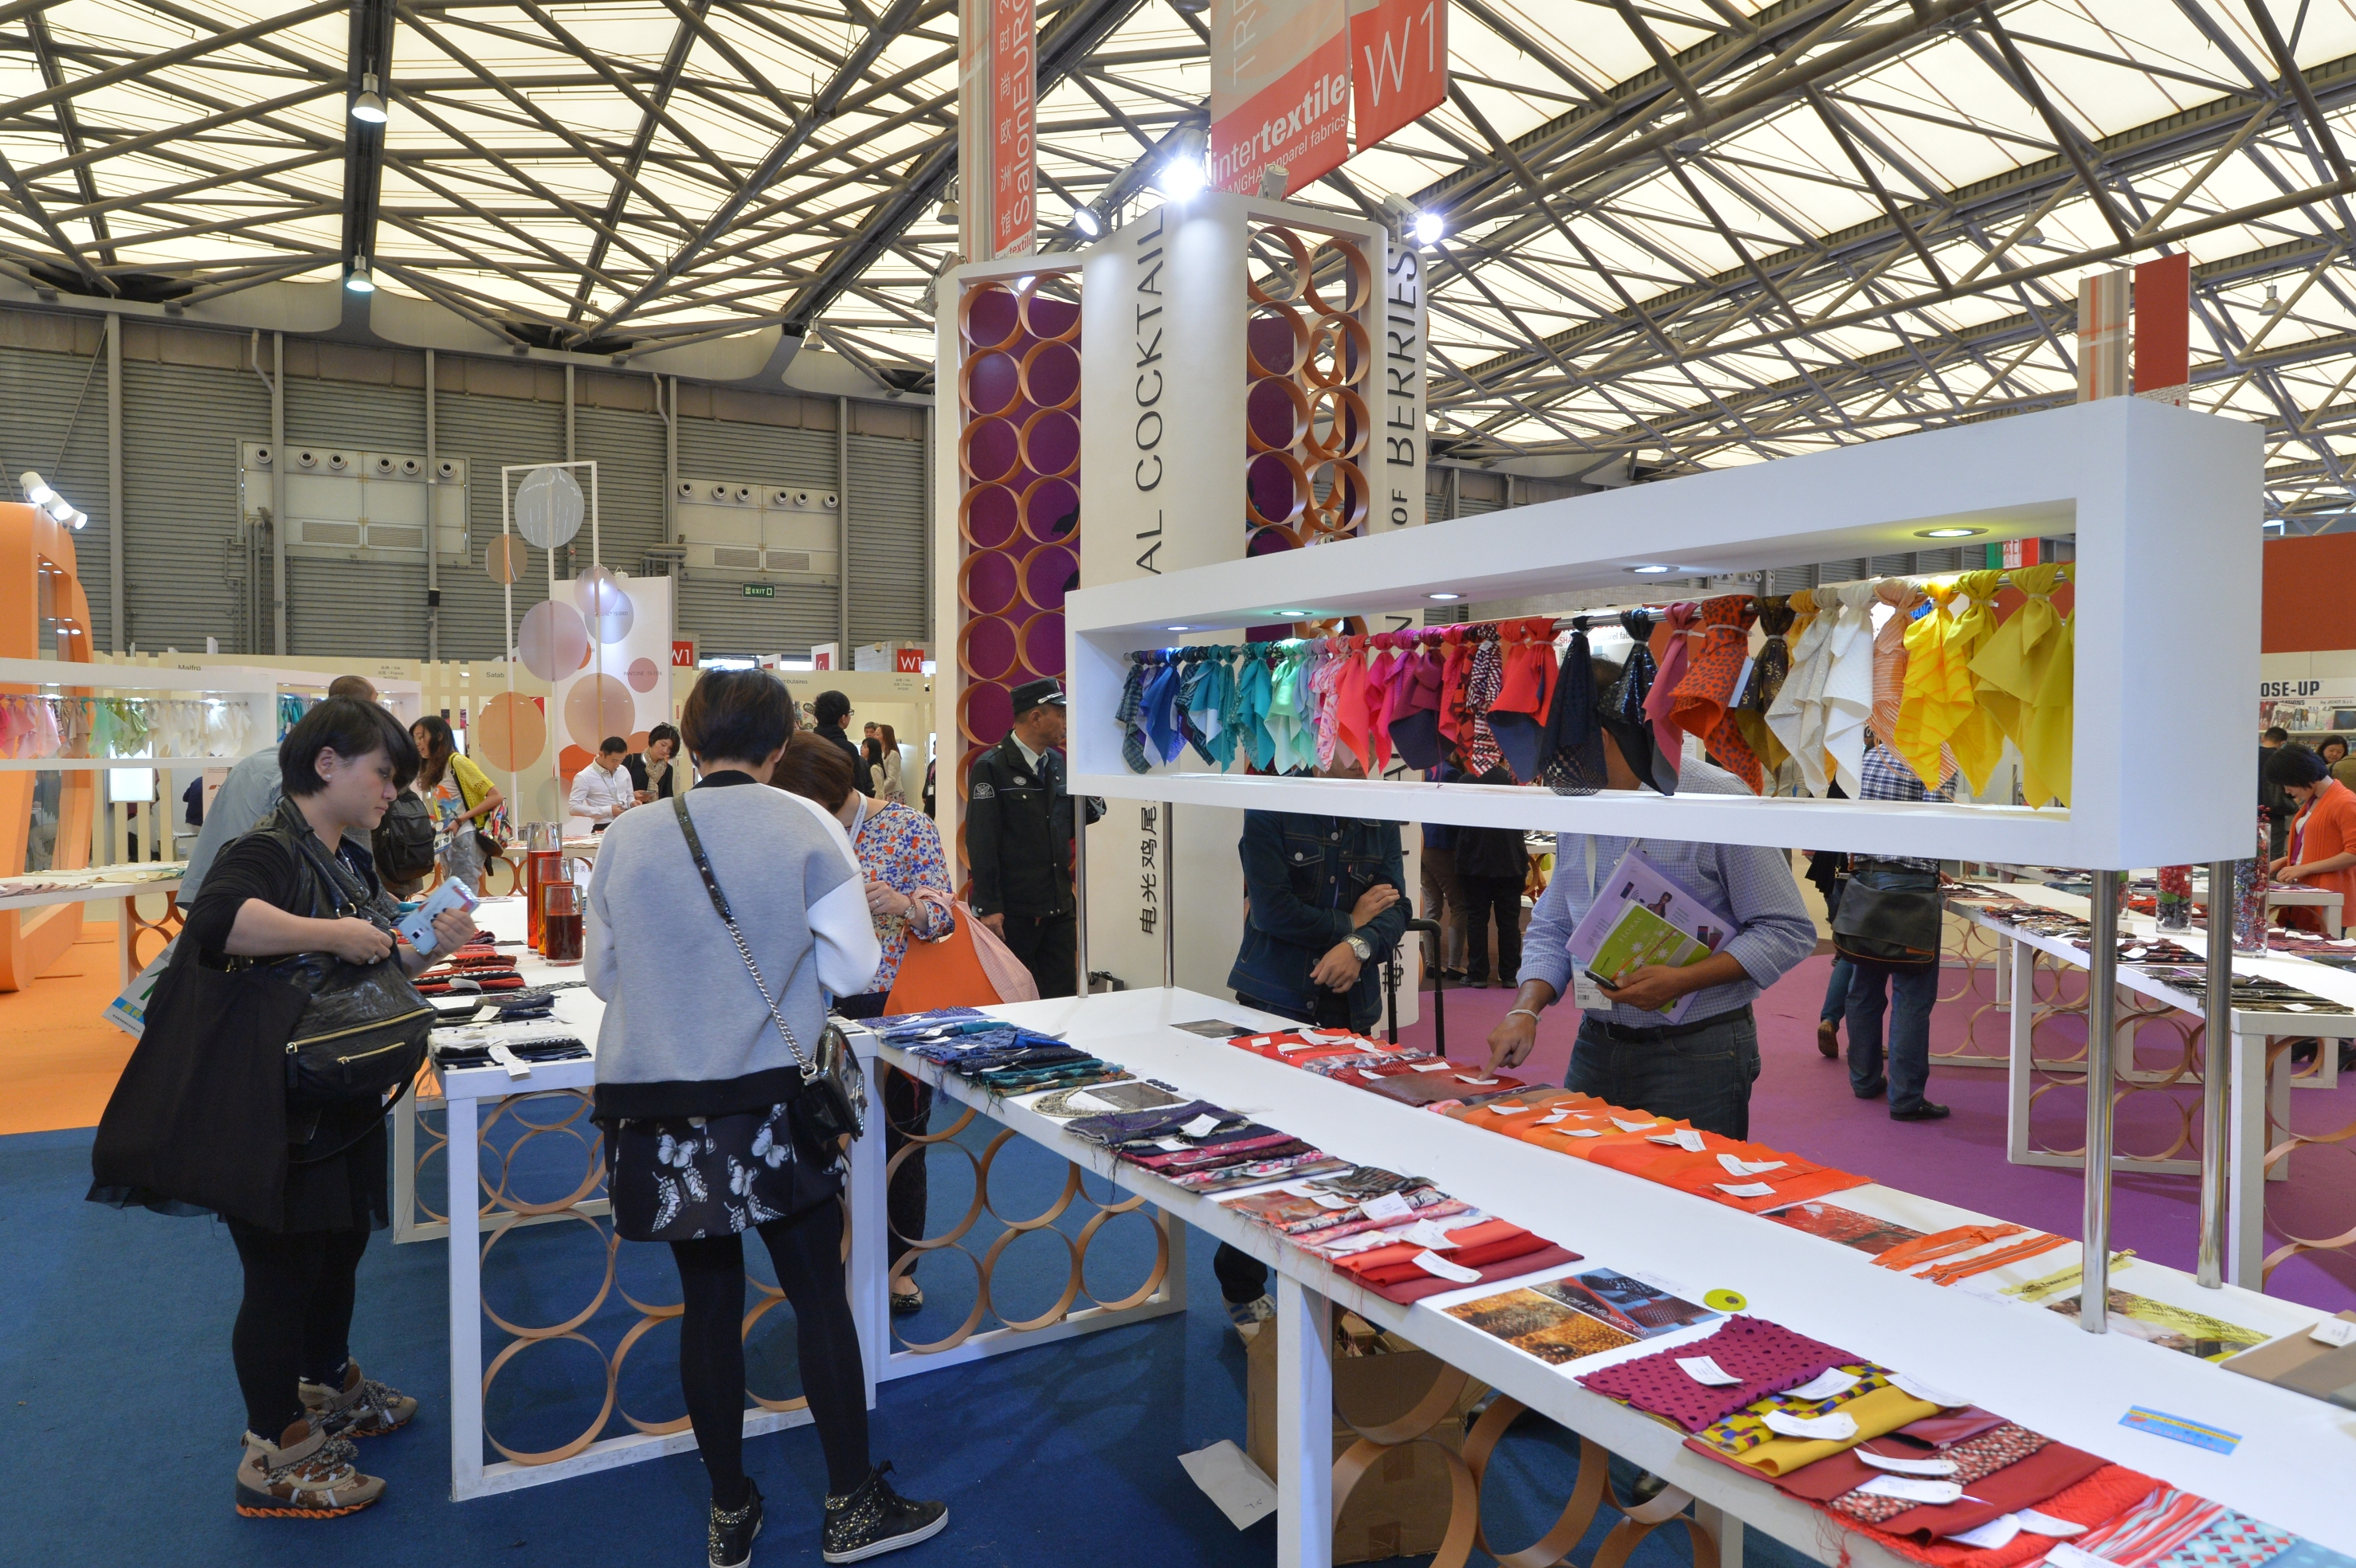 The Autumn / Winter 2016-17 international trends will be revealed in the Intertextile Directions Trend Forum. © Messe Frankfurt / Intertextile Shanghai Apparel Fabrics – Autumn edition